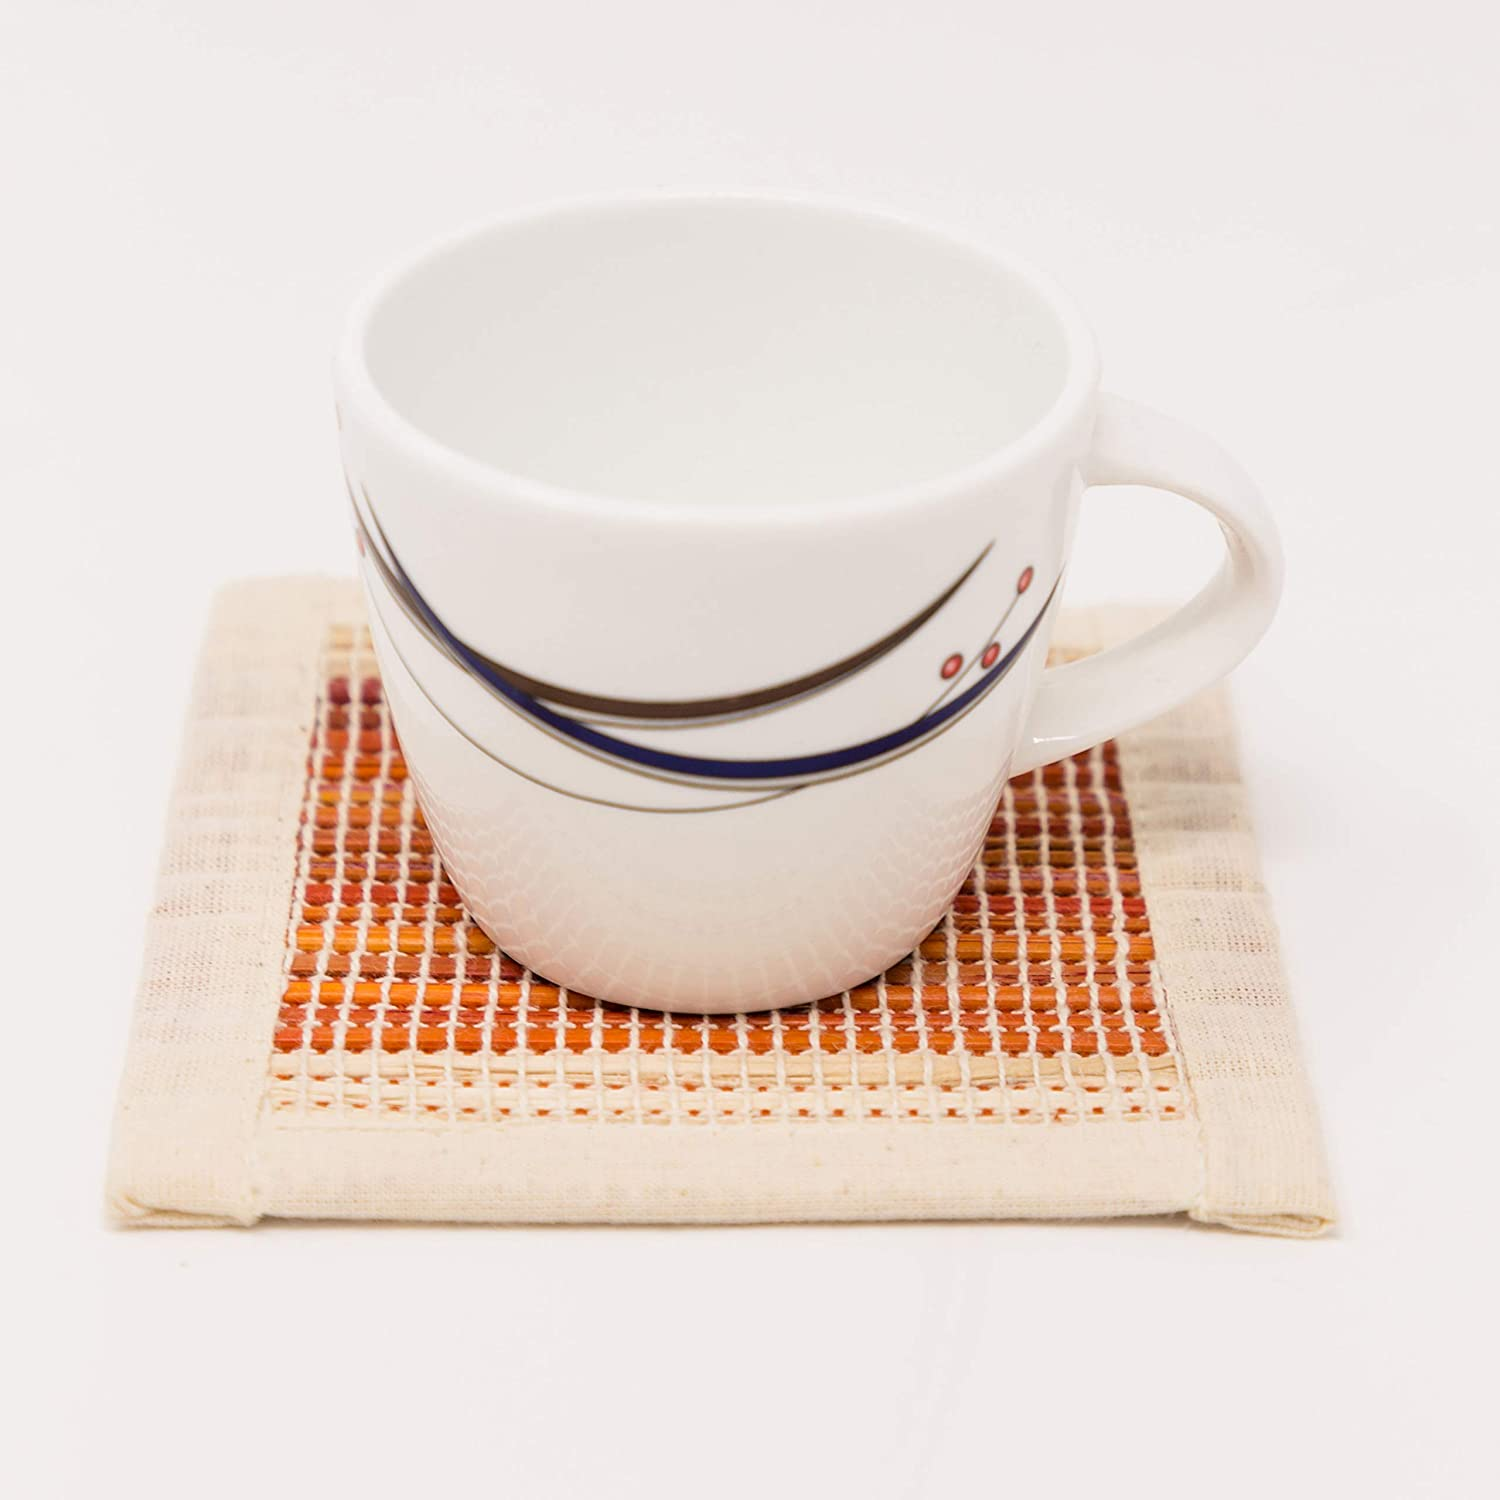 6 Matching Coasters 6 placemats Striped All Natural Double Sided Banana Fiber Placemats and Coasters with Jute Storage Bags was $18.99 One Week Sale!